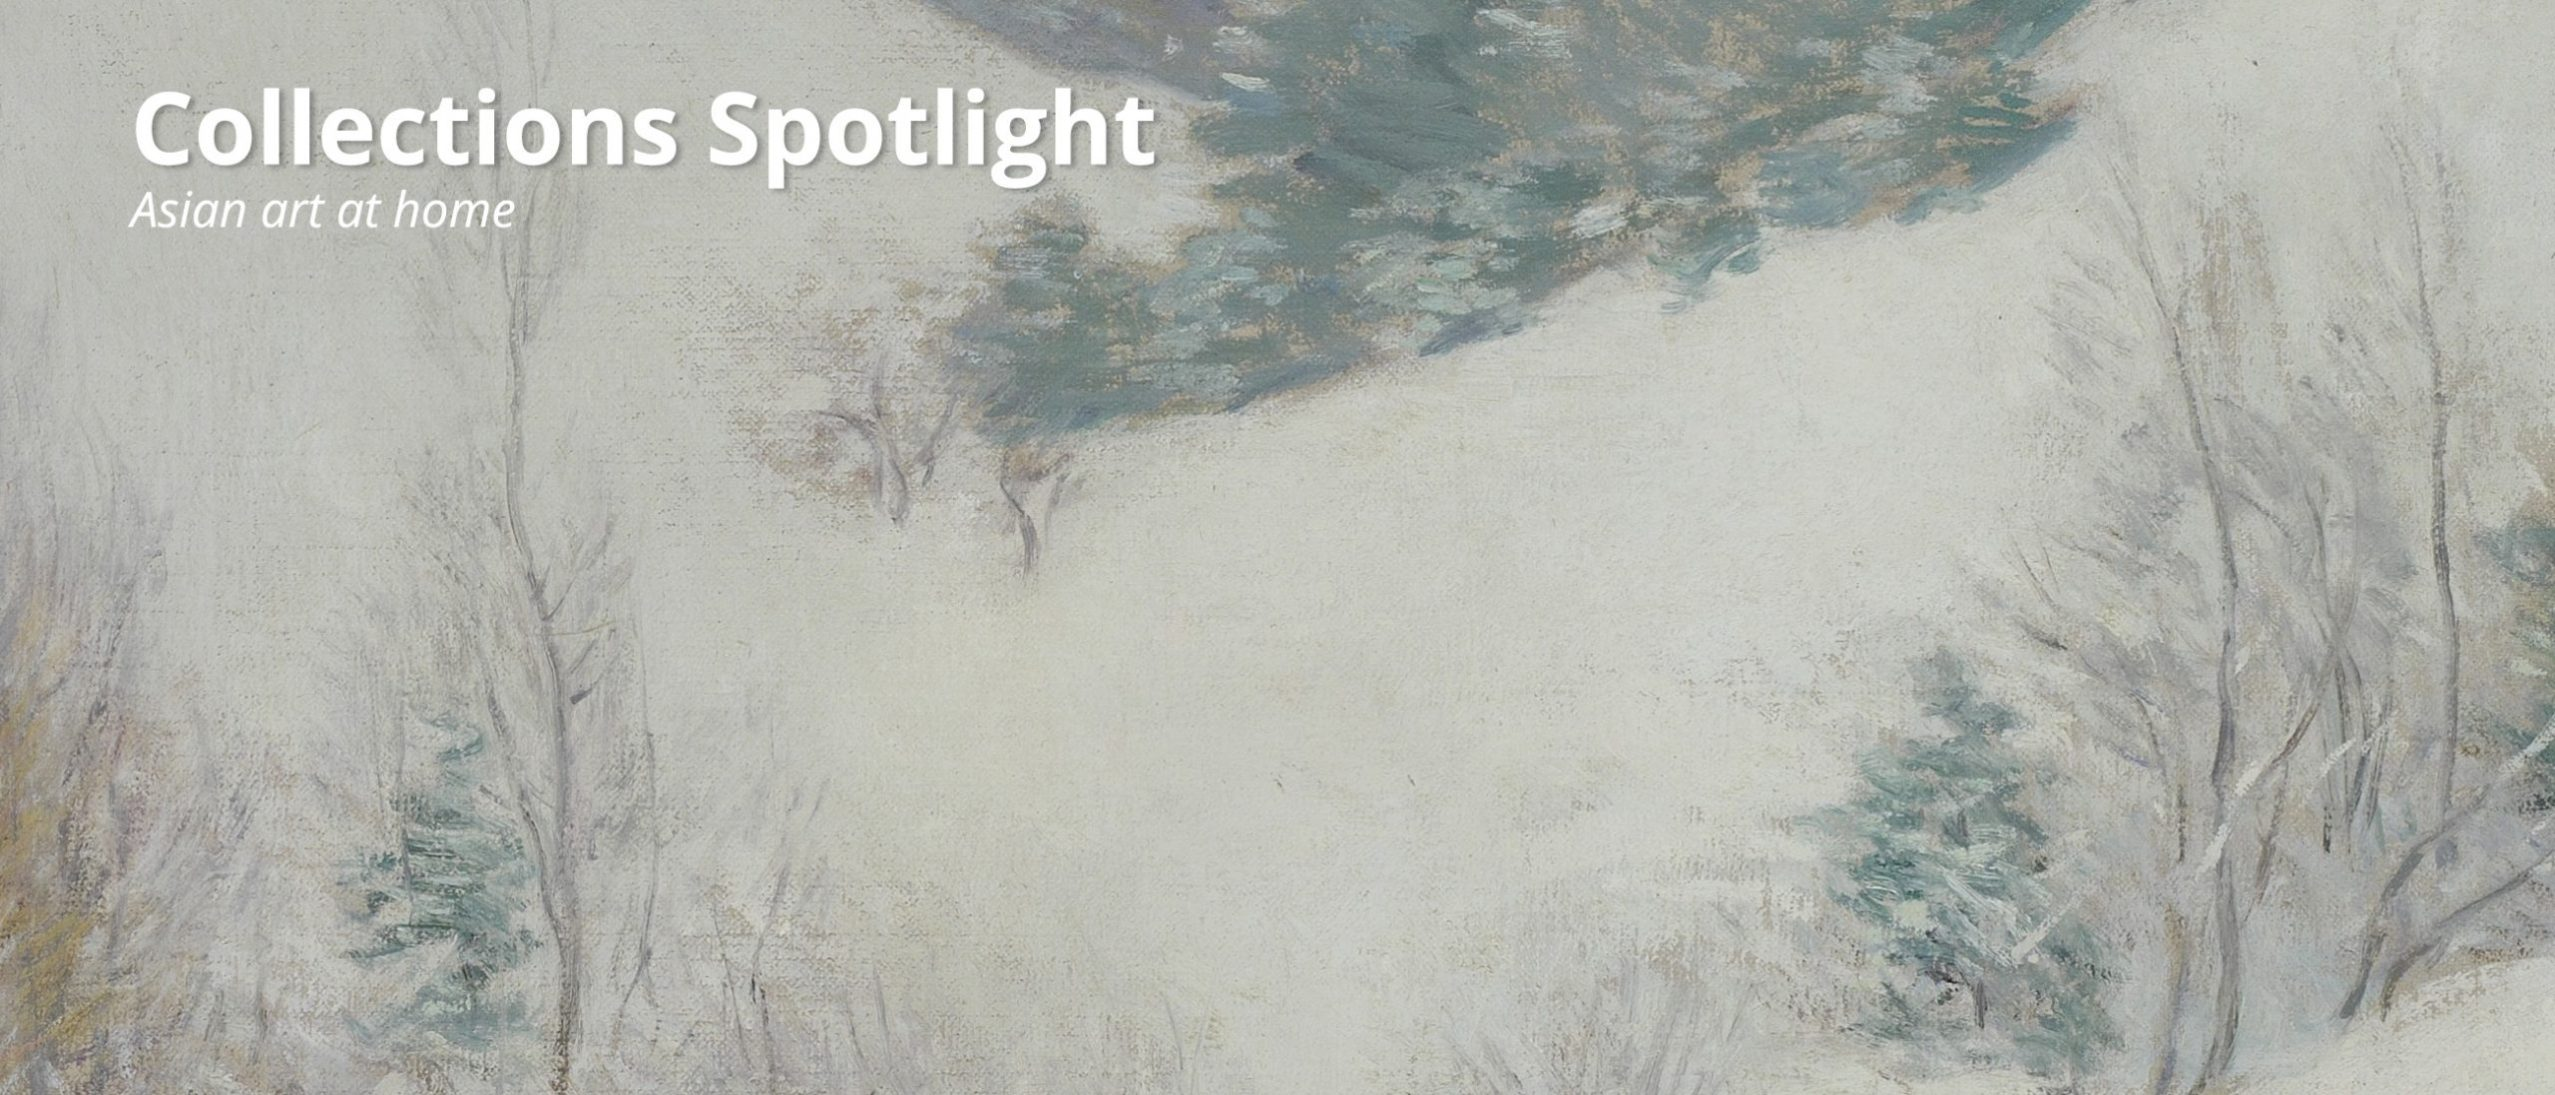 Collections spotlight: the white pasture. Detail of a painting, showing trees done in gestural strokes against a white background